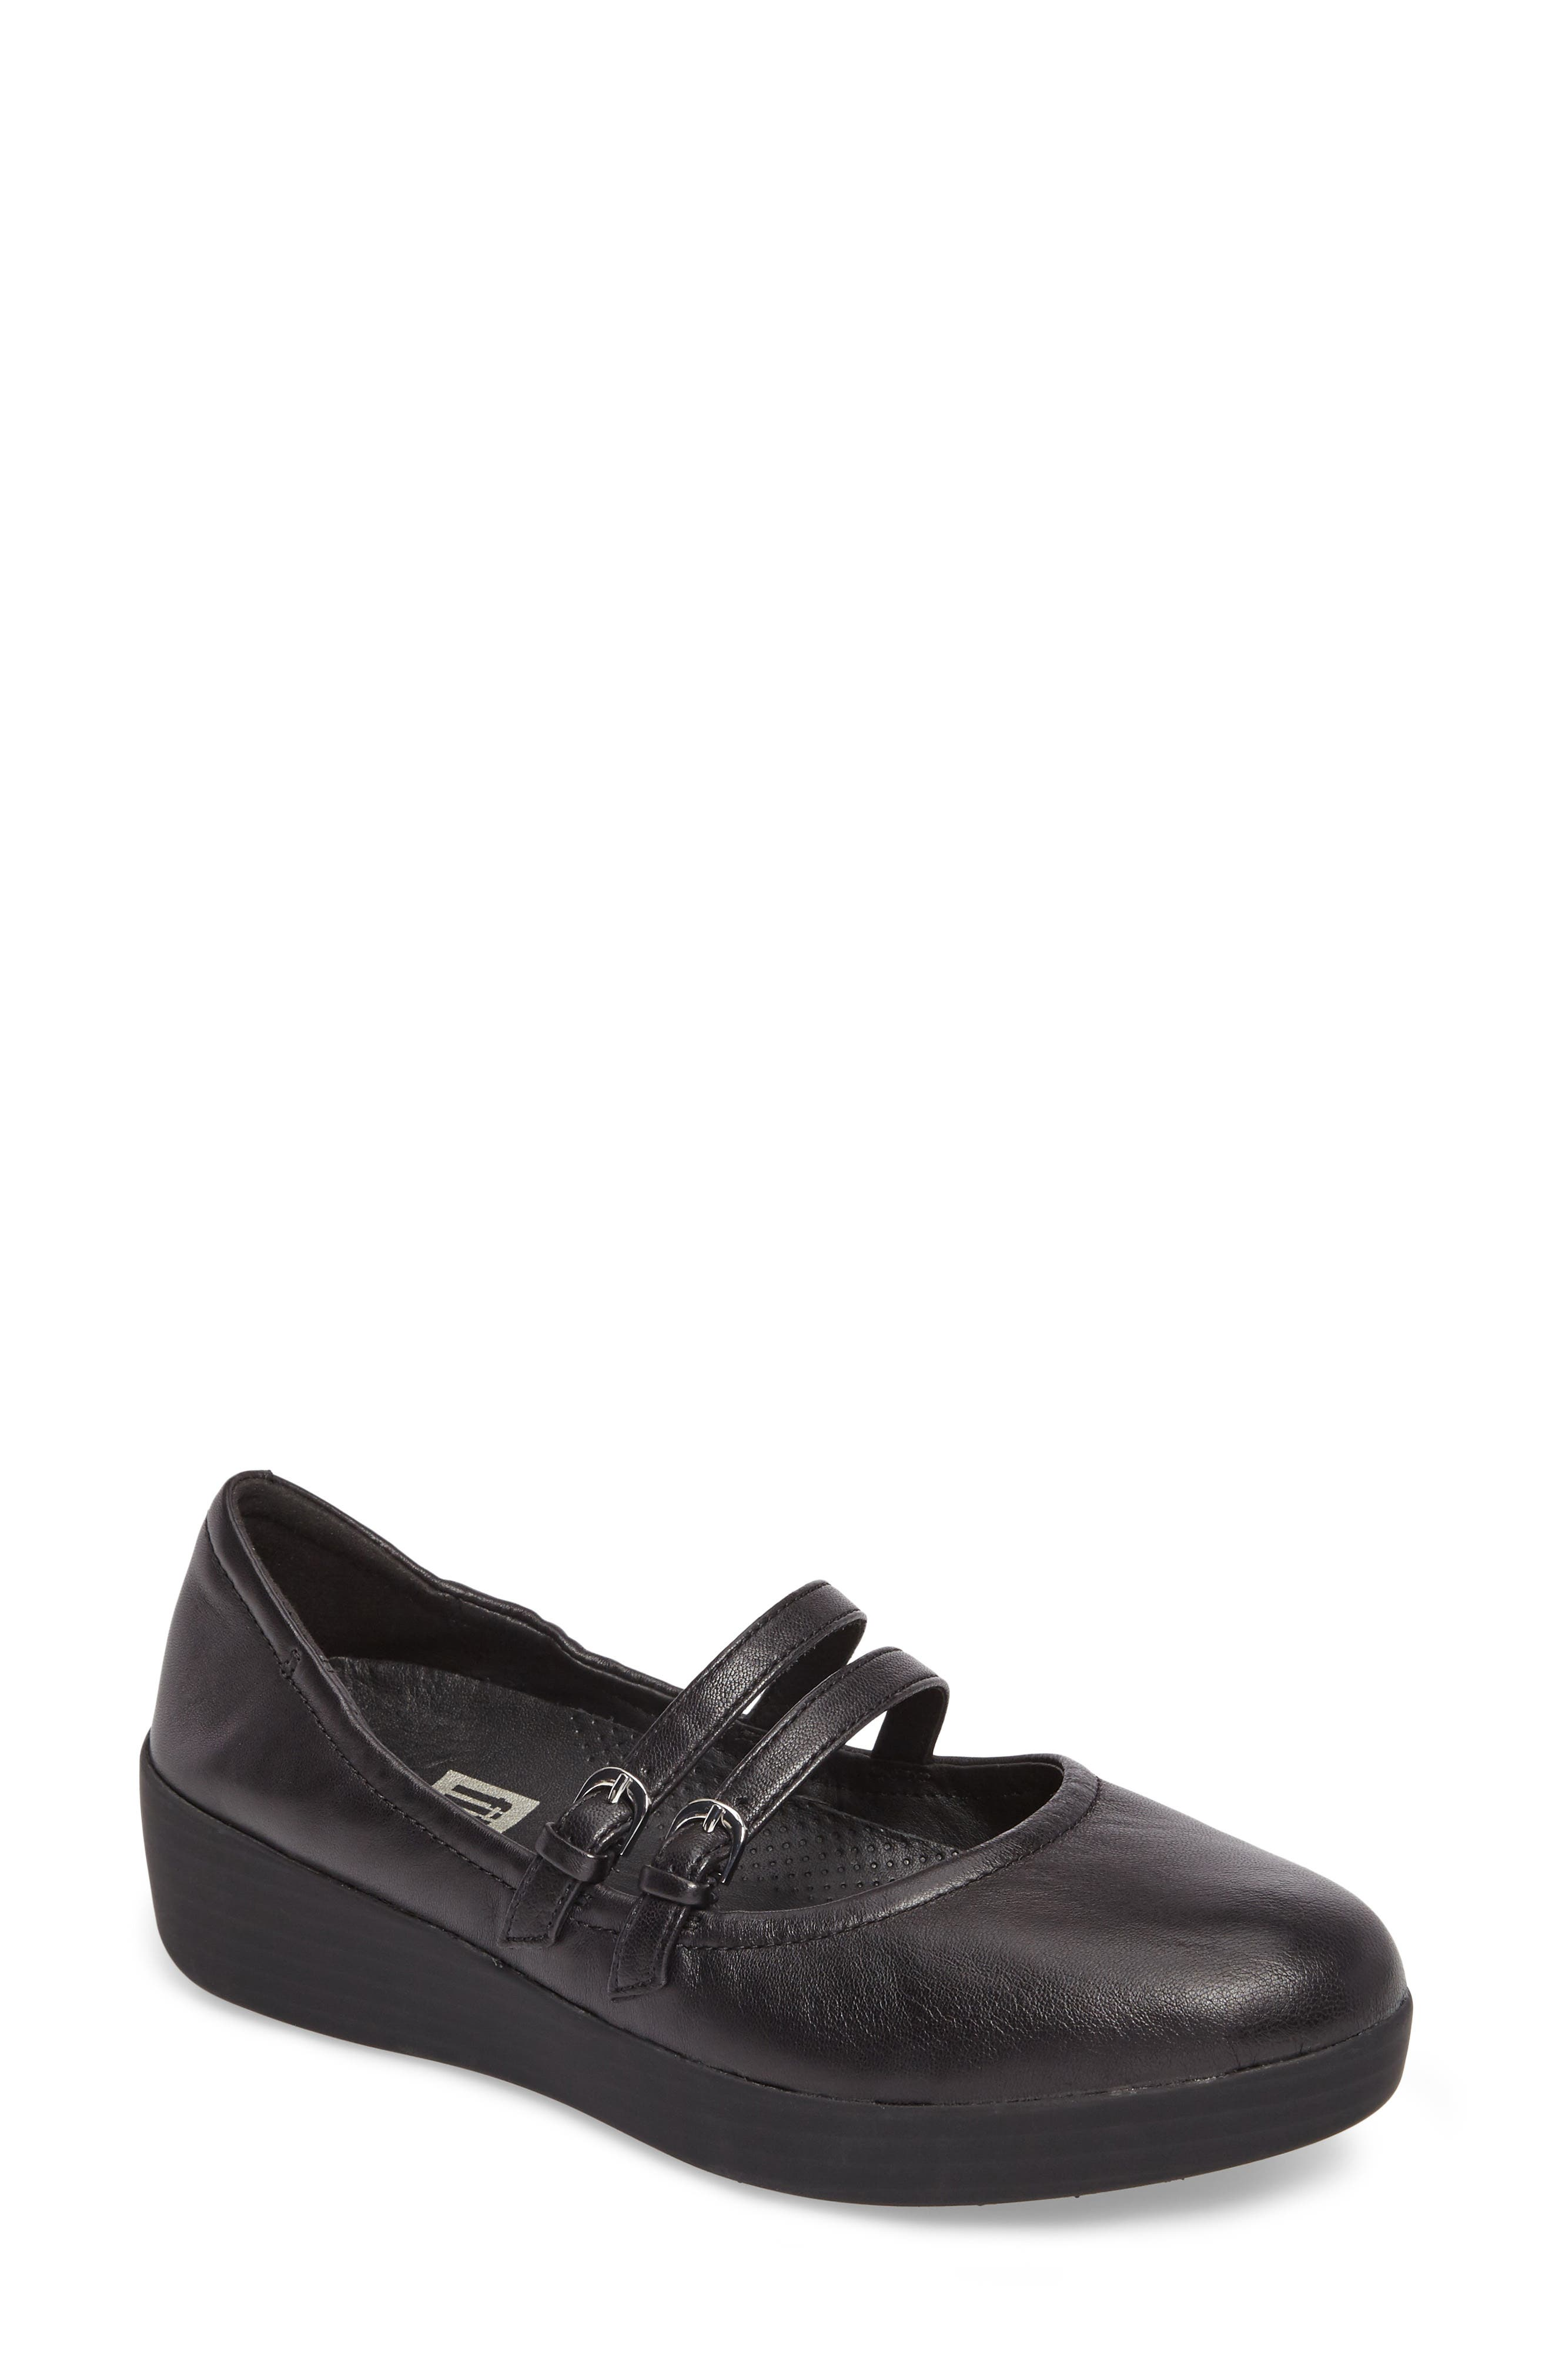 SuperBendy<sup>™</sup> Mary Jane Flat,                         Main,                         color, Black Leather